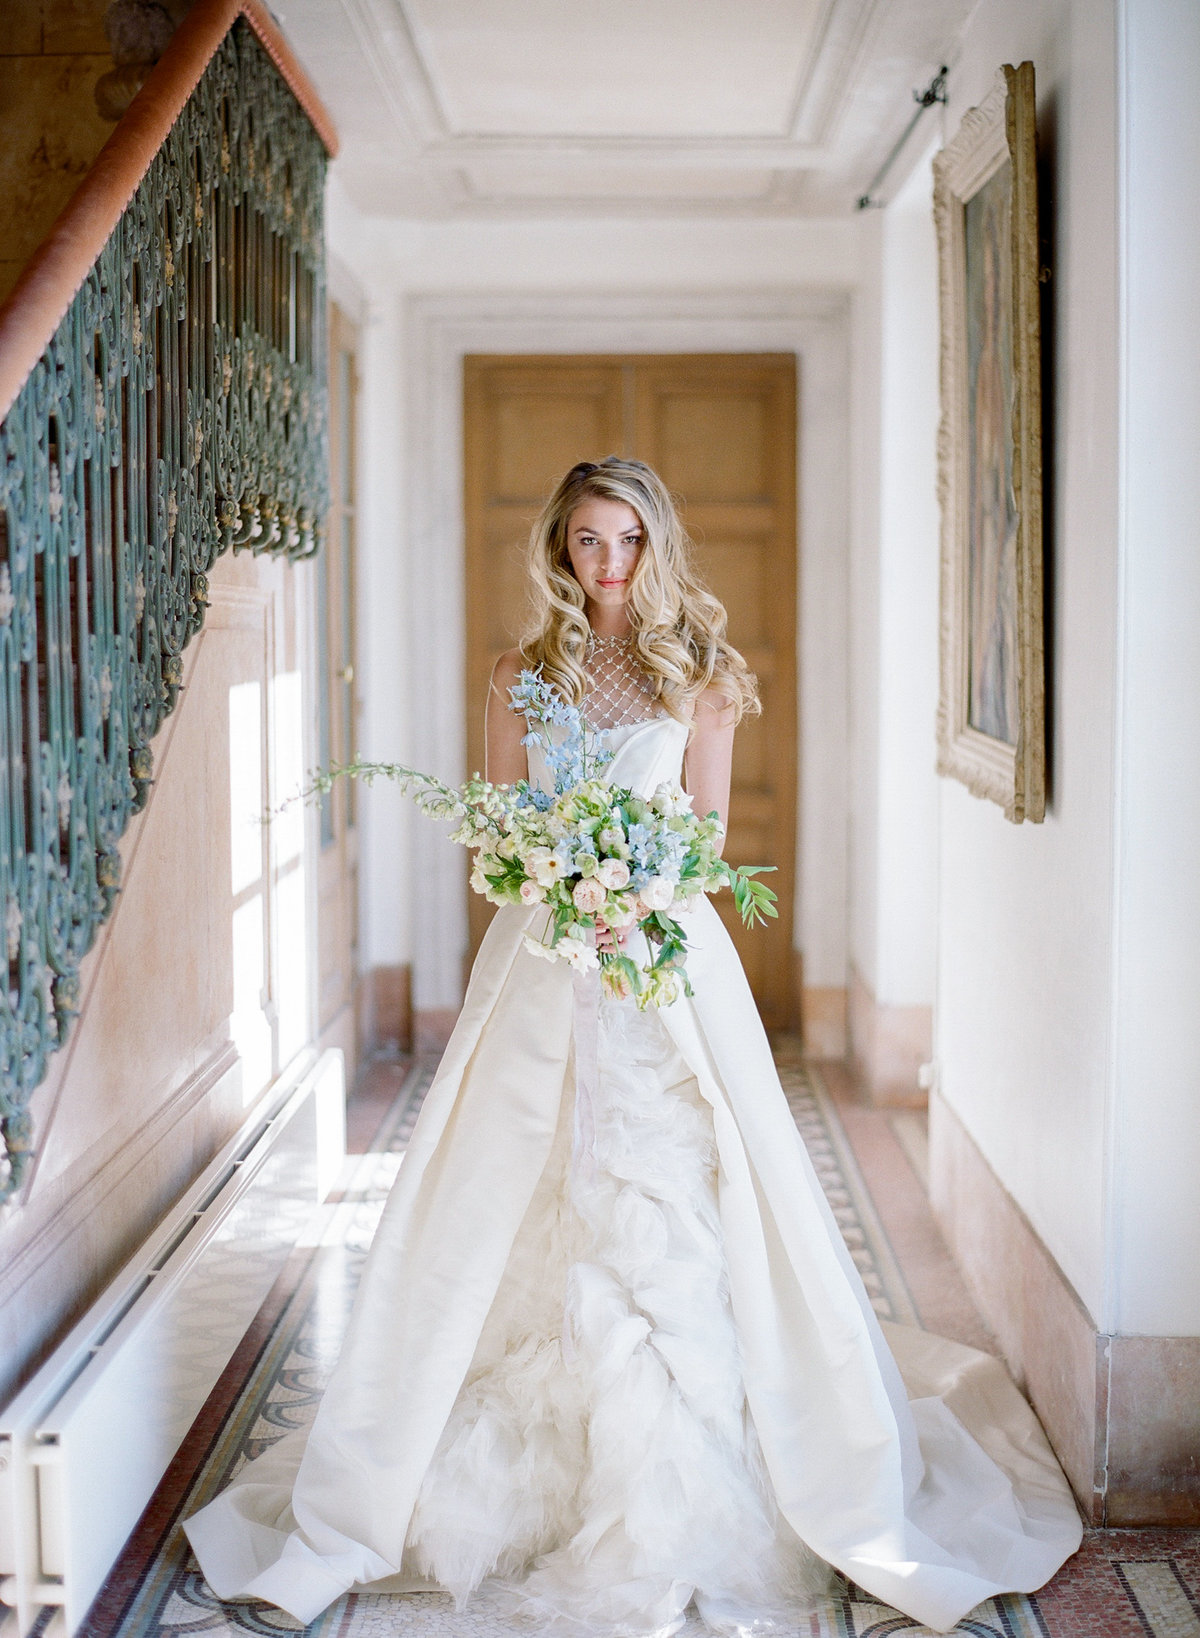 Jessie Barksdale Photography-Birmingham Alabama Wedding Photographer_18